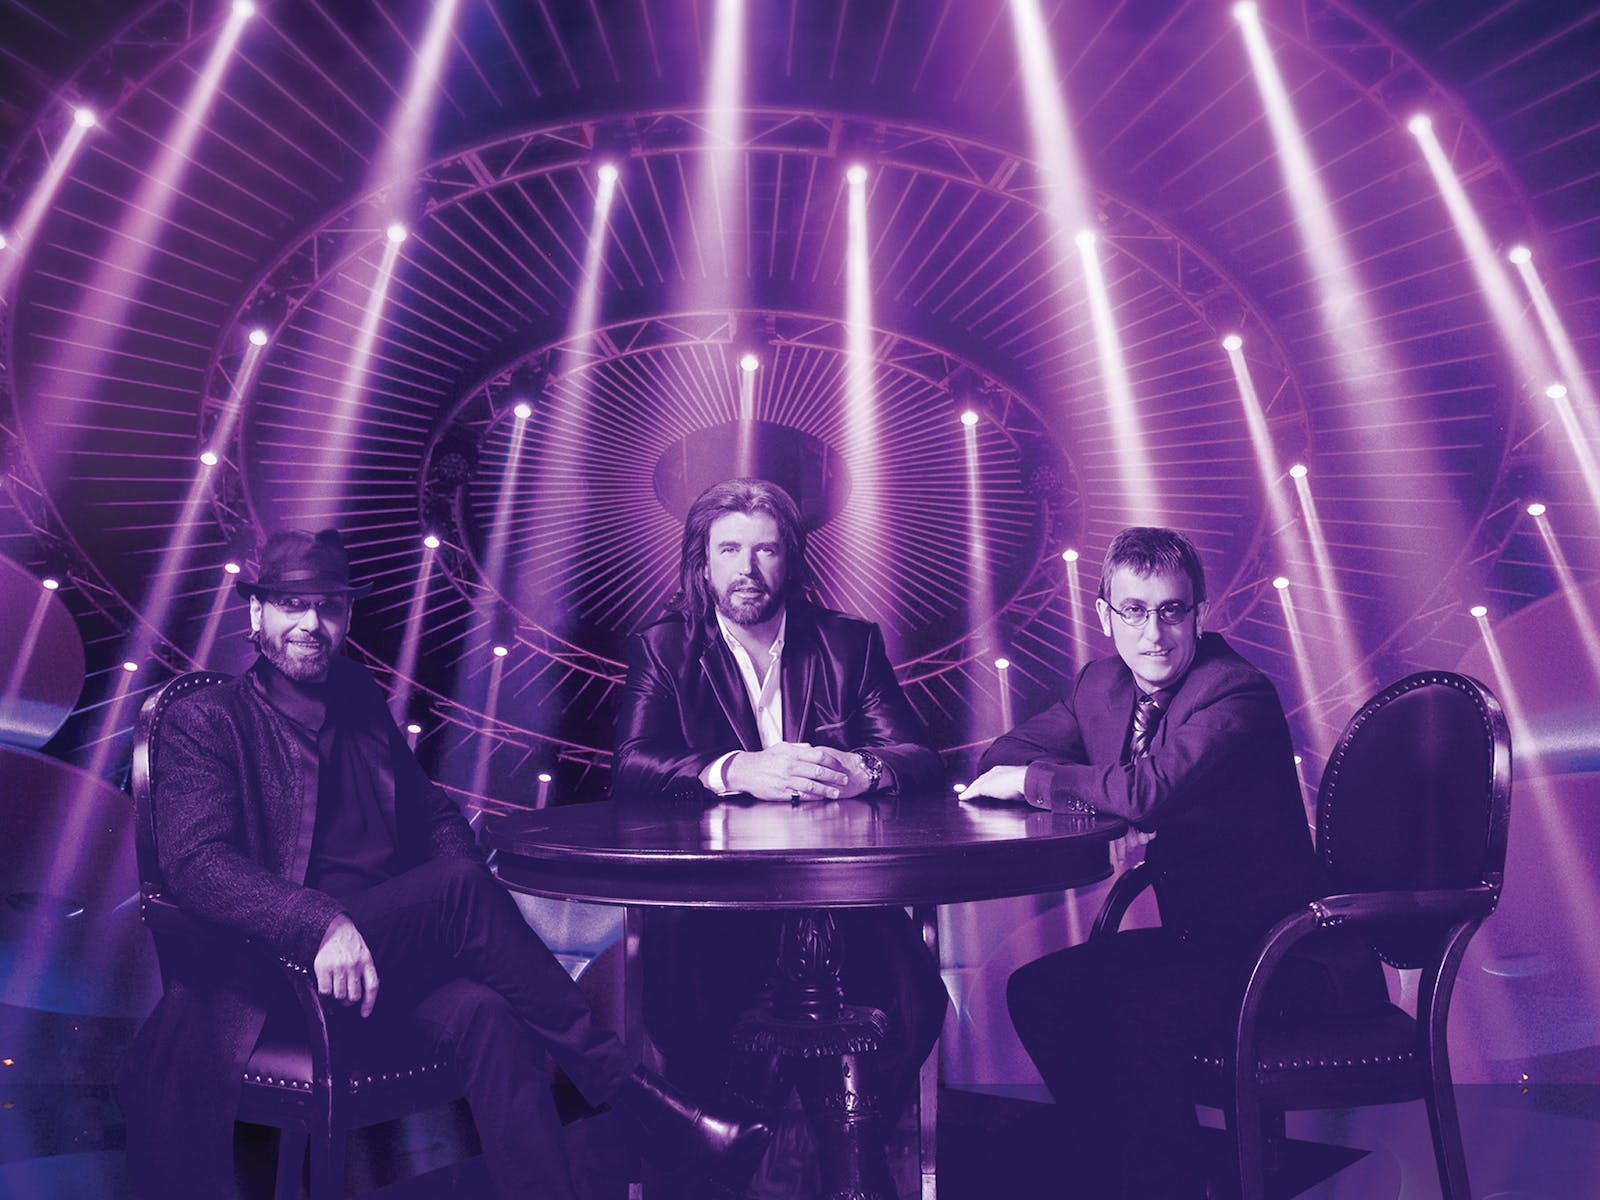 Image for The Australian Bee Gees Show - 25th Anniversary Tour - Bathurst